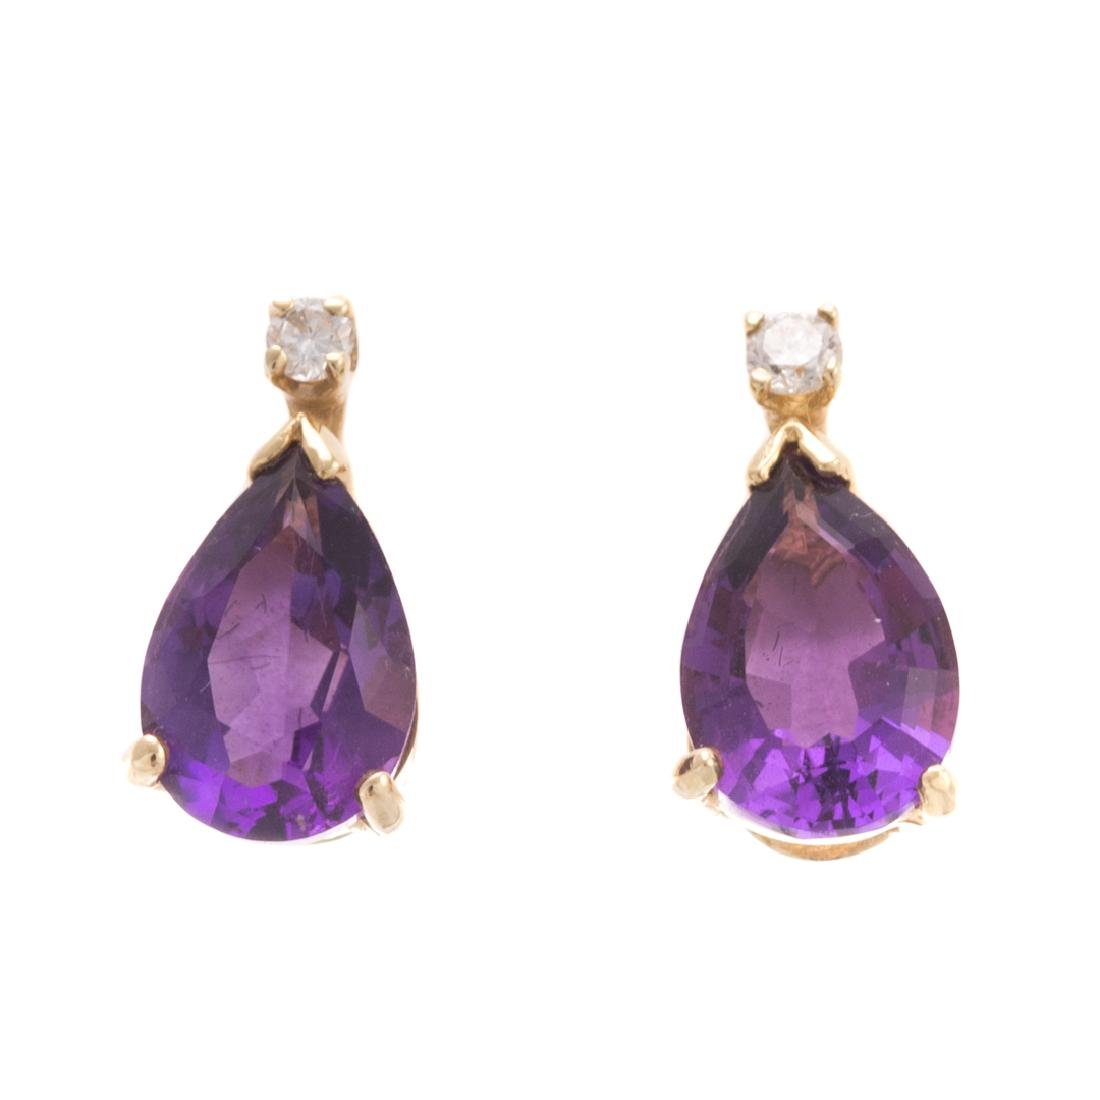 A Lady's Amethyst Ring & Earrings - 6